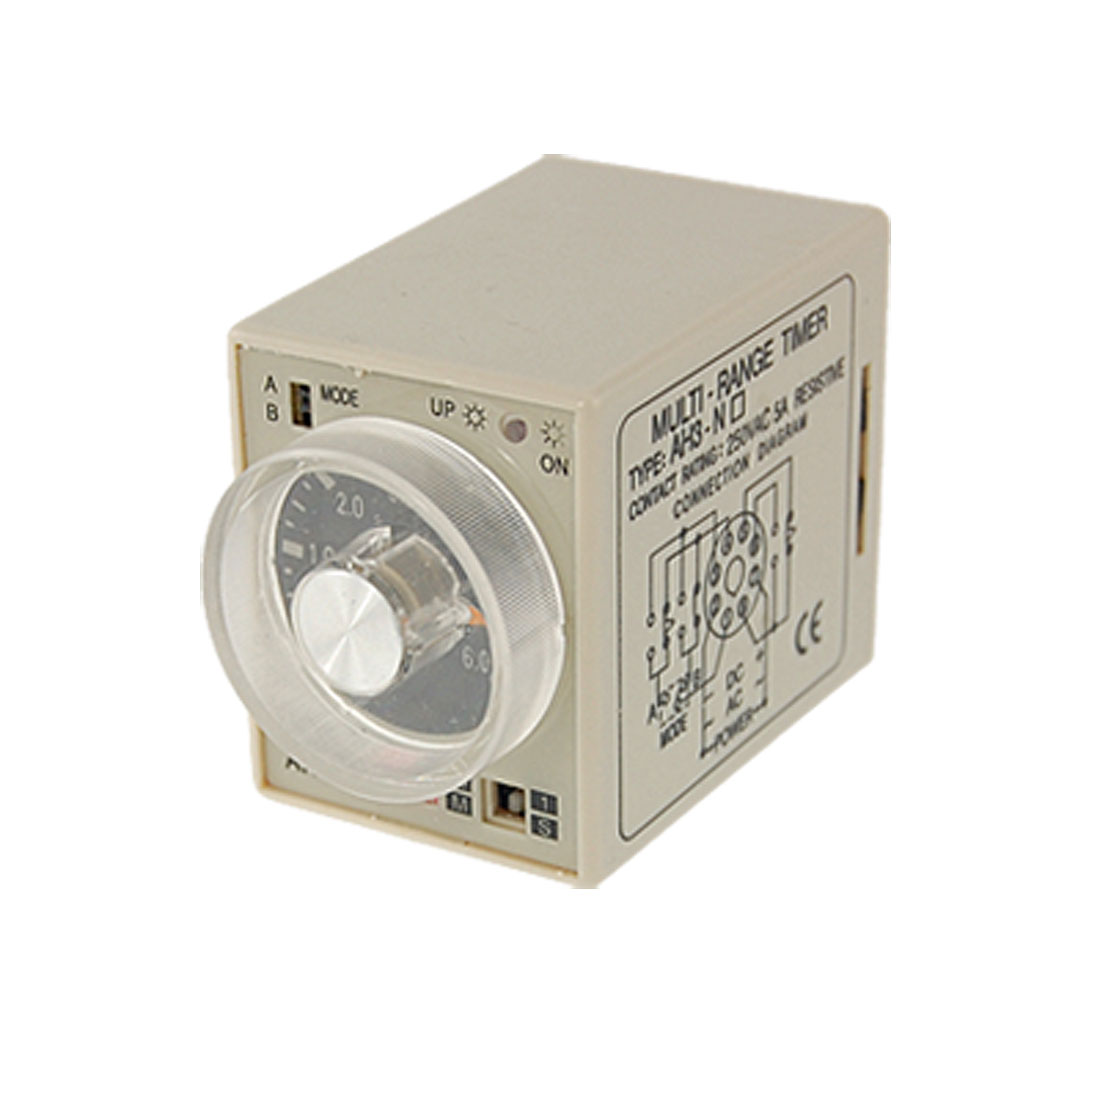 Industrial Timer AH3-NC 6S - 60M AC220V Time Delay Relay